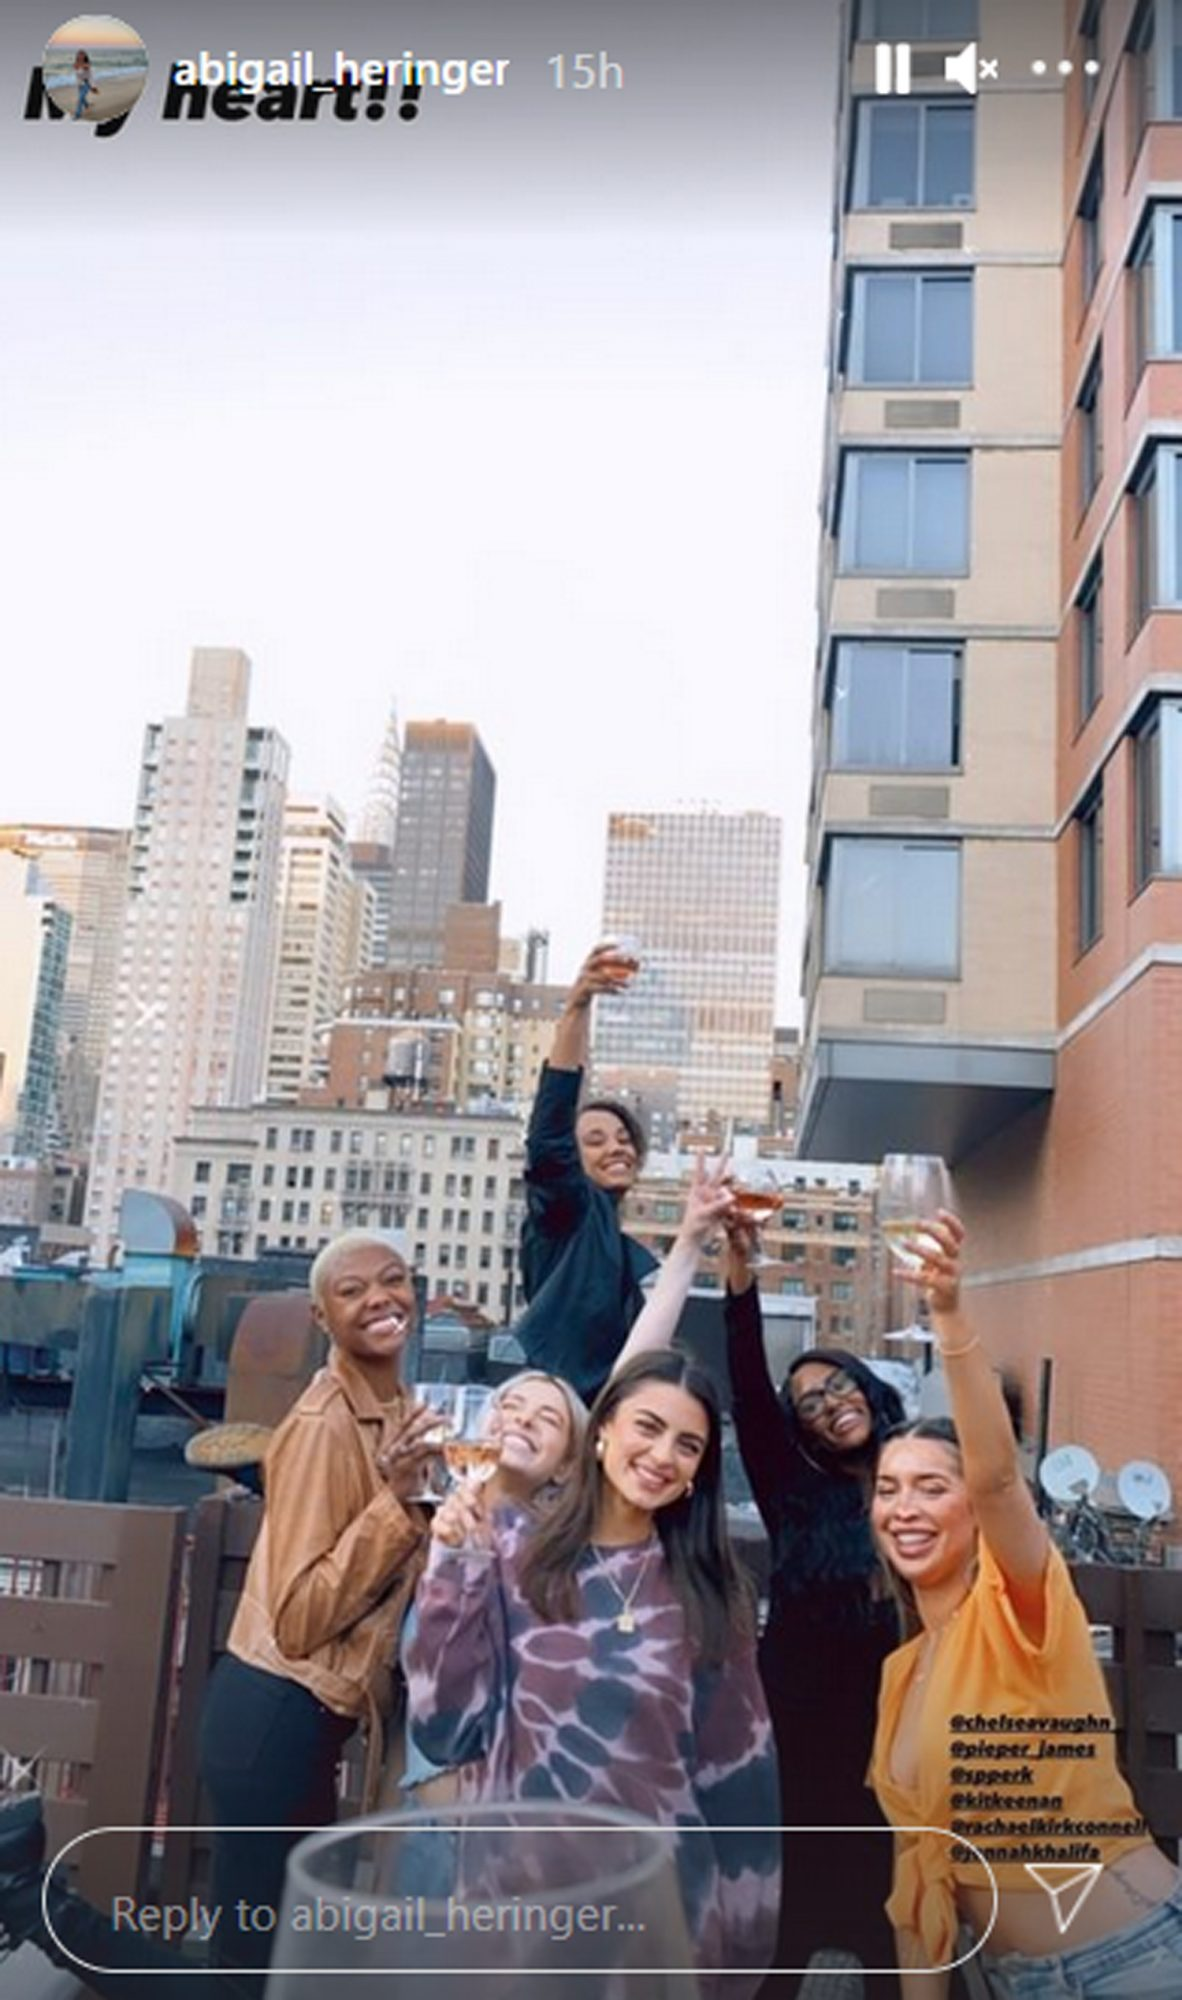 Rachael Kirkconnell Meets Up with Fellow Bachelor Contestants in NYC